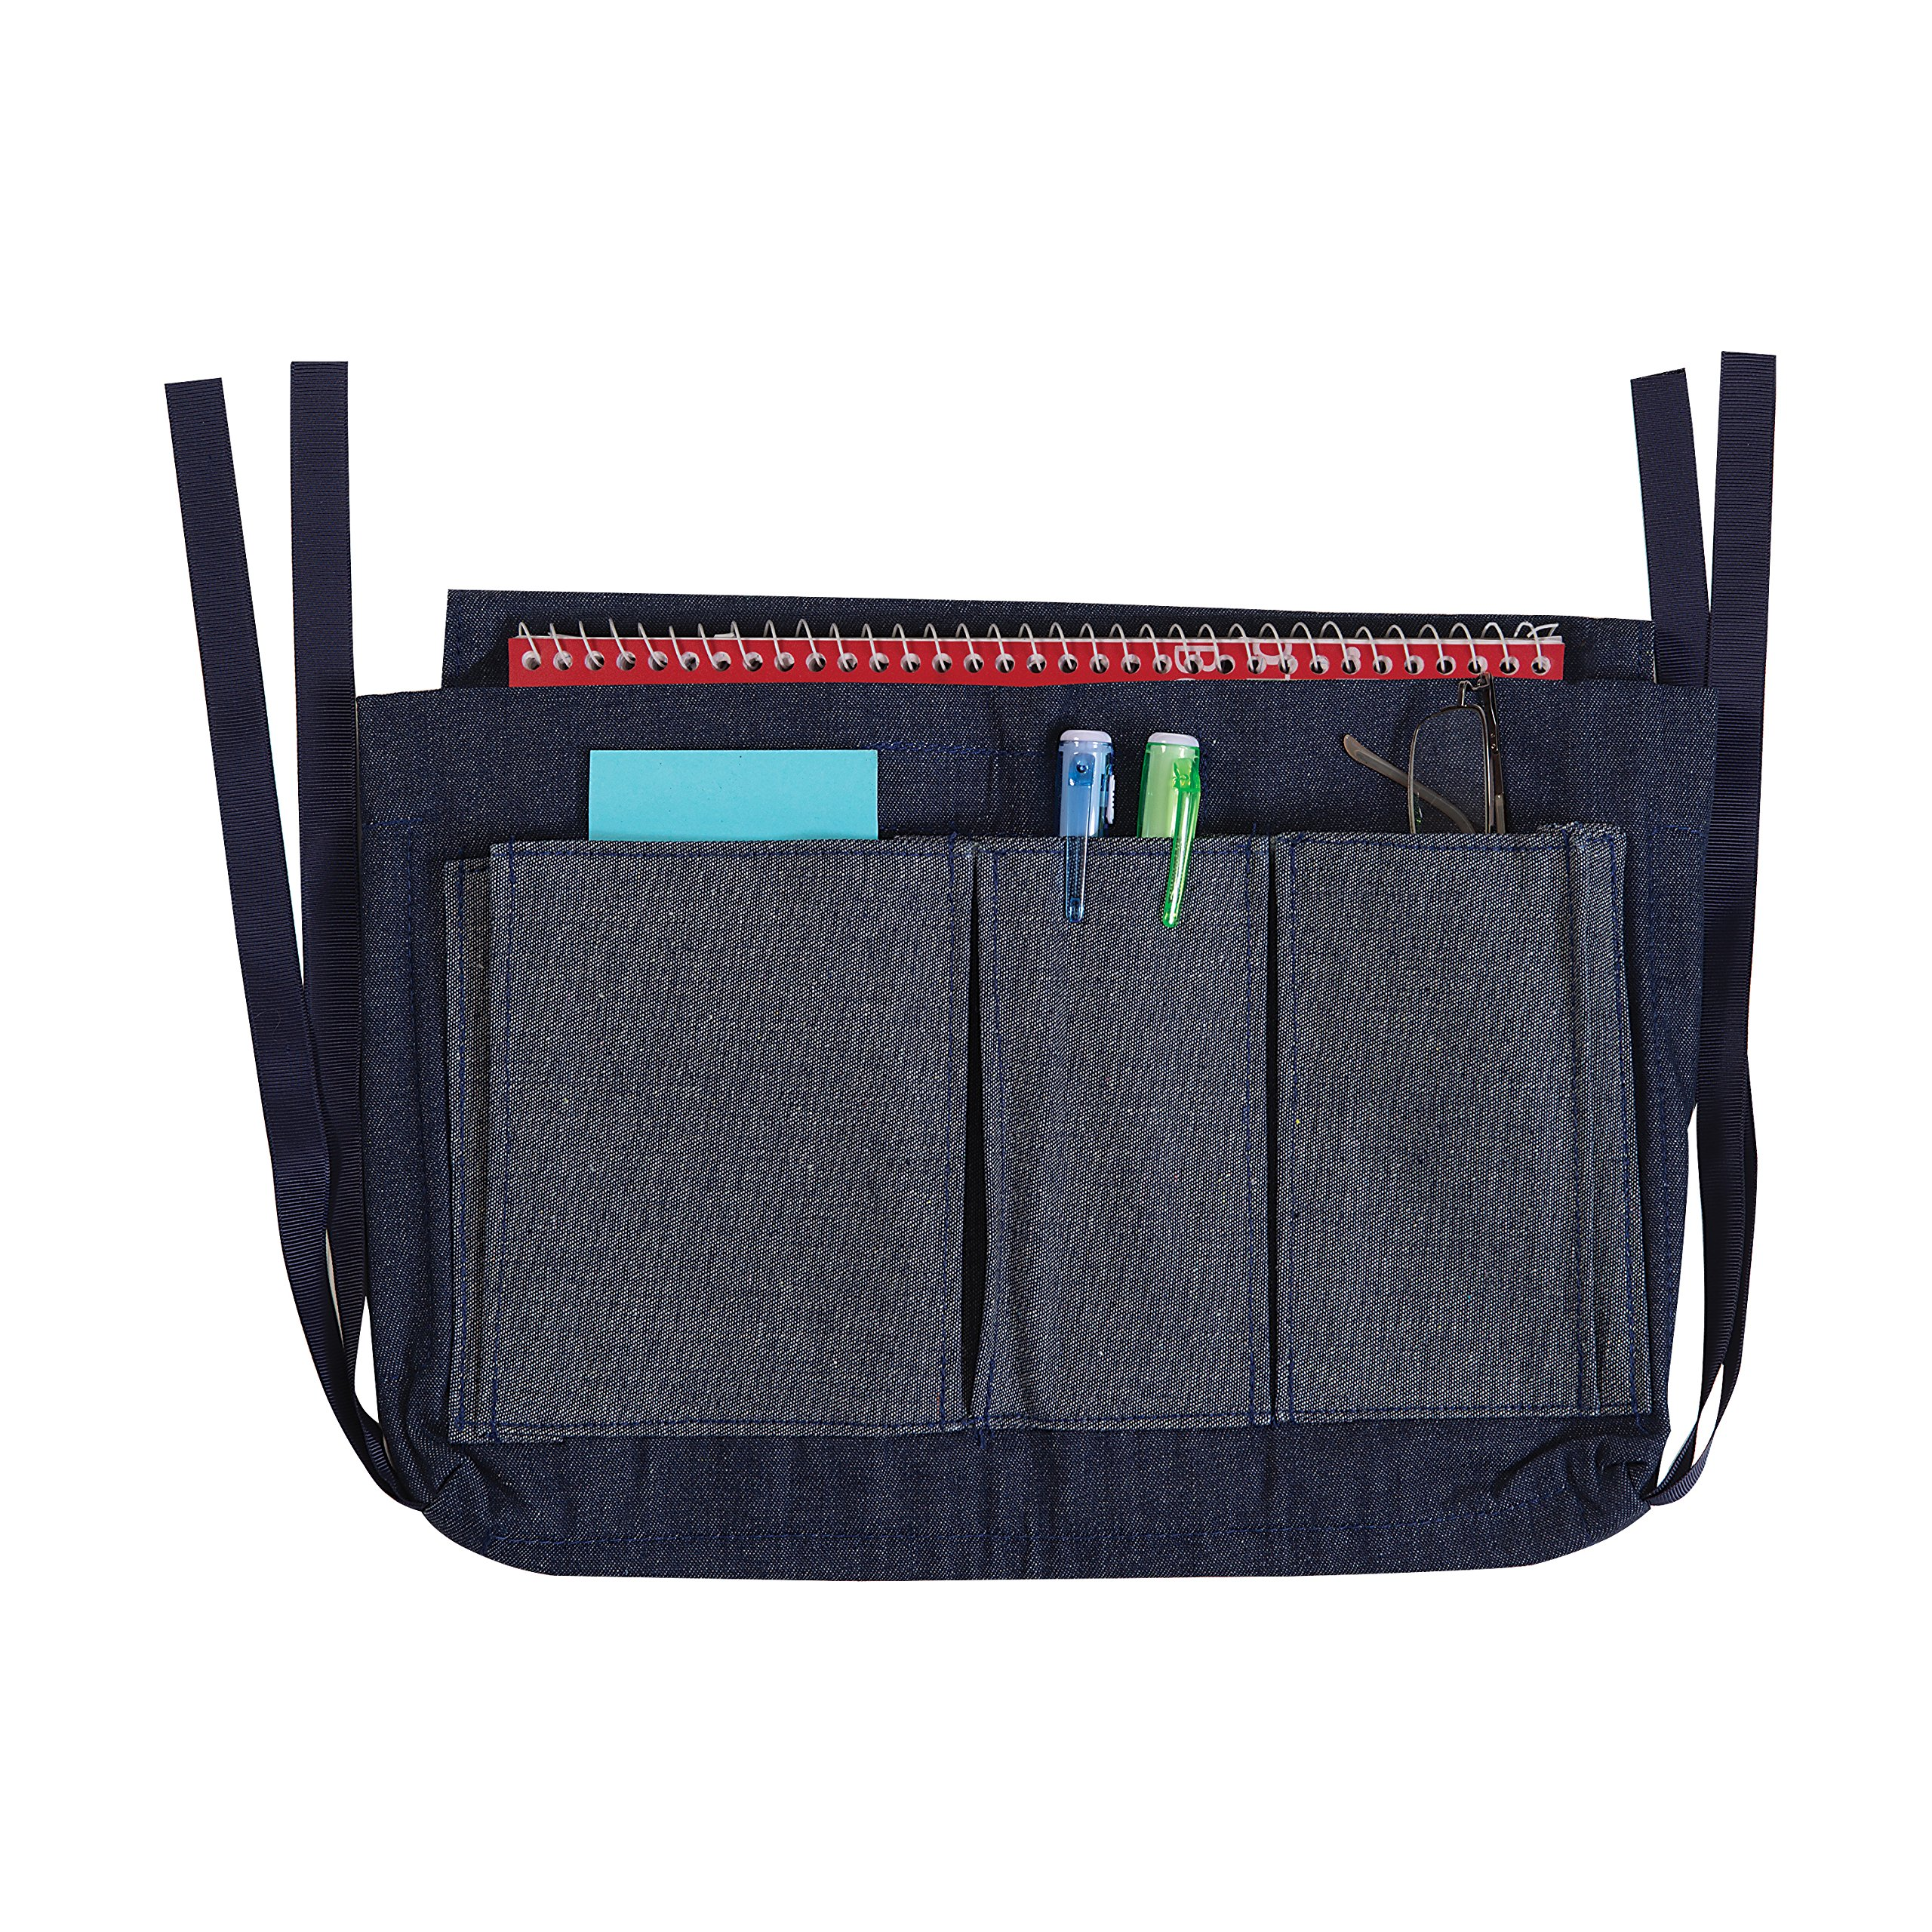 Duro-Med Walker Bag Attaches and Detached Easily, Plenty of Storage and Durable, Multi-Pocket Walker Accessories Bag, Blue Denim, 9.5 x 13 Inches